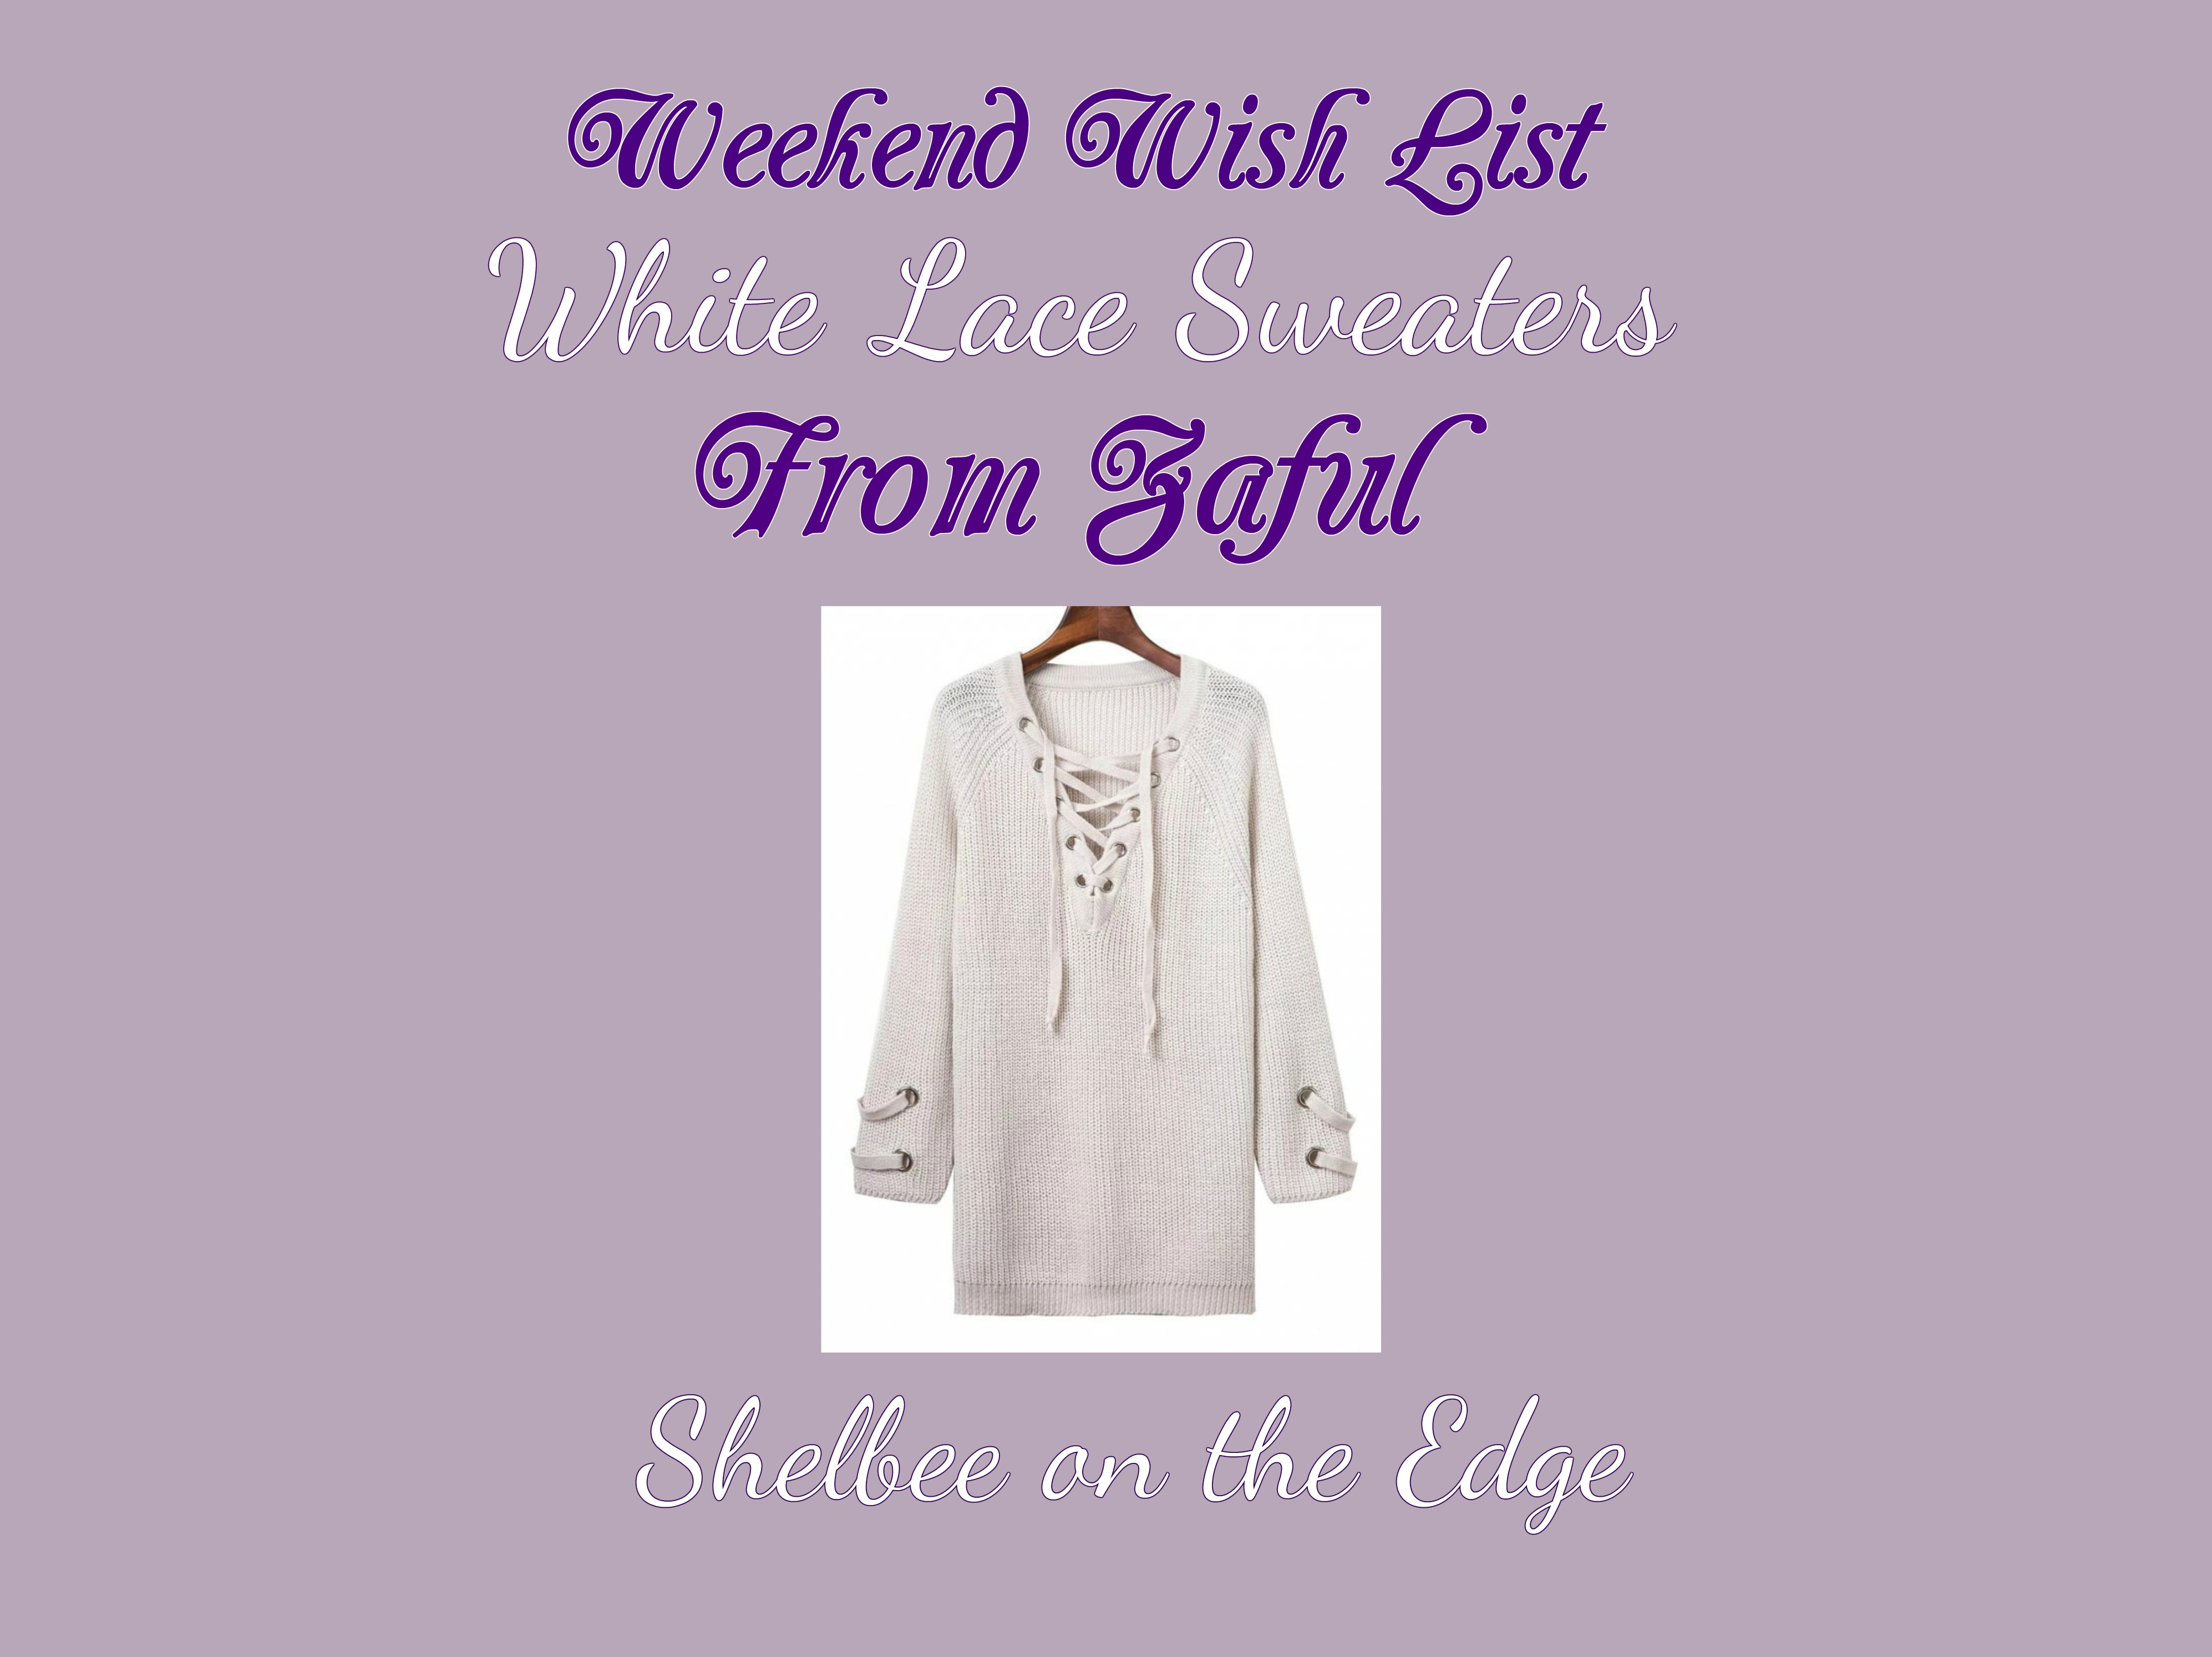 Weekend Wish List: White Lace Sweaters from Zaful